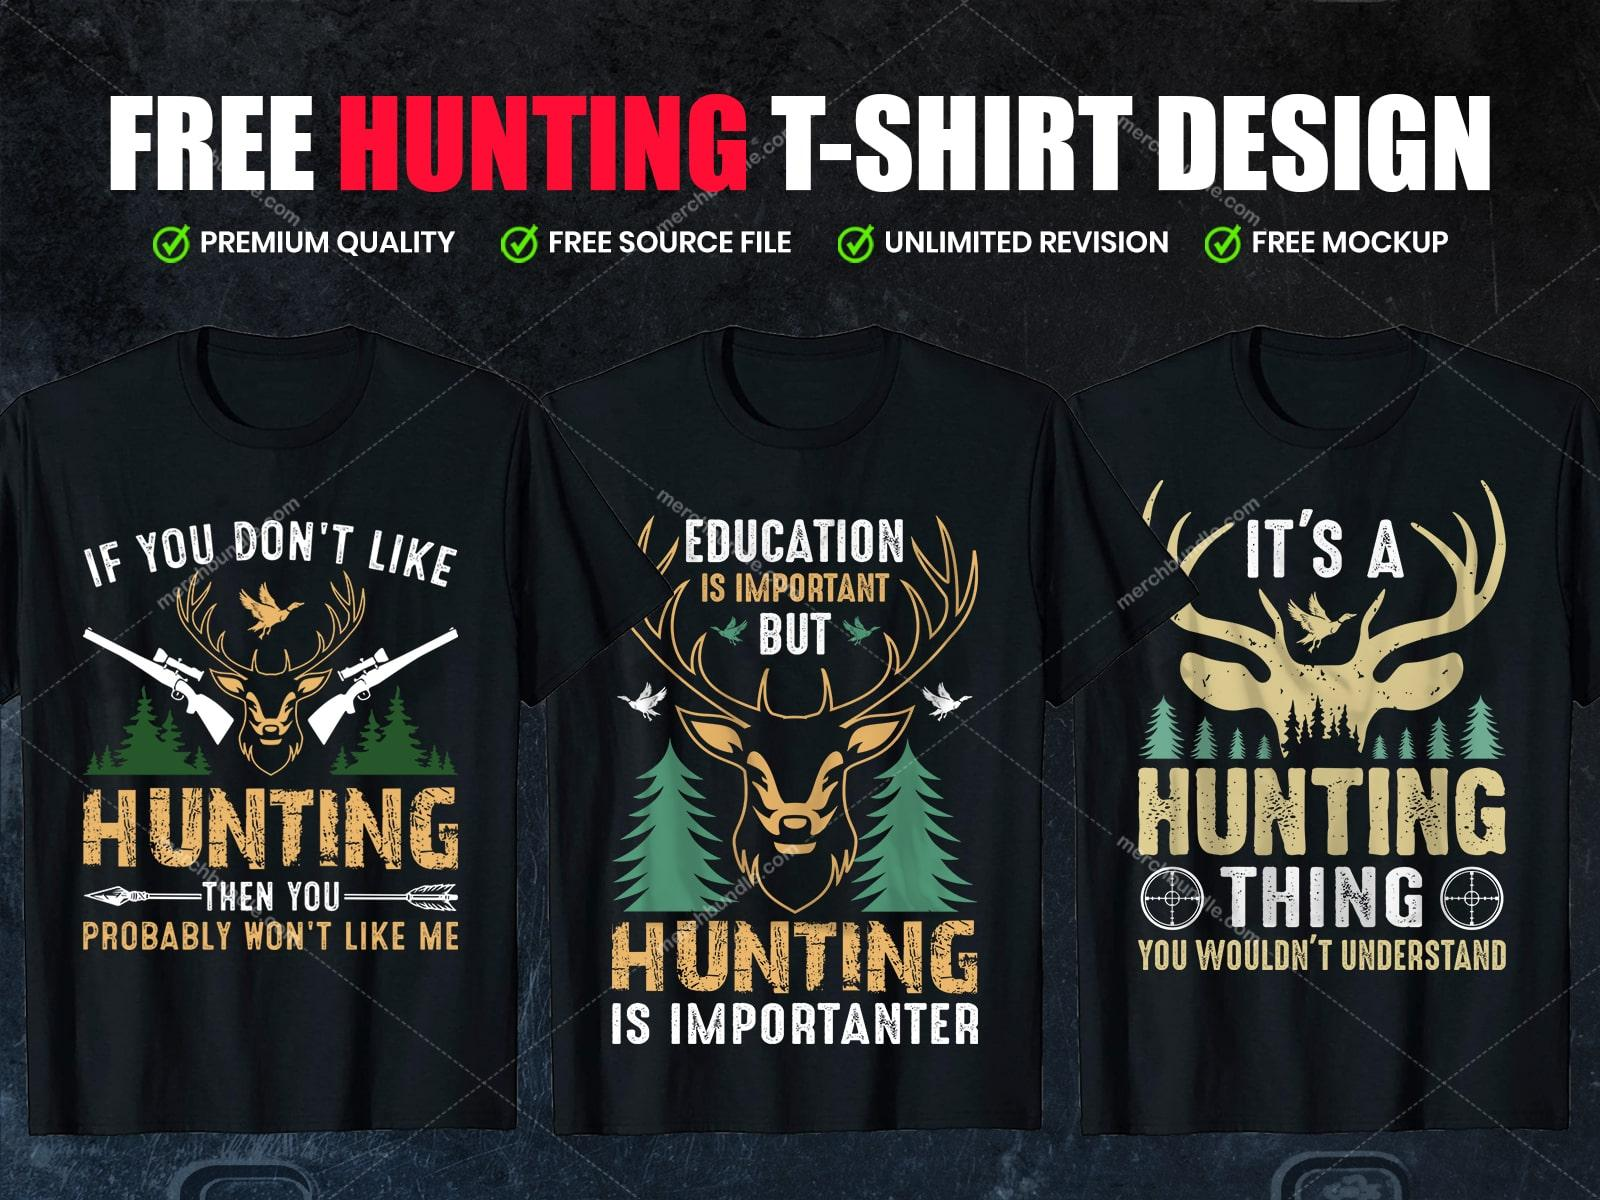 Free hunting t shirt design1